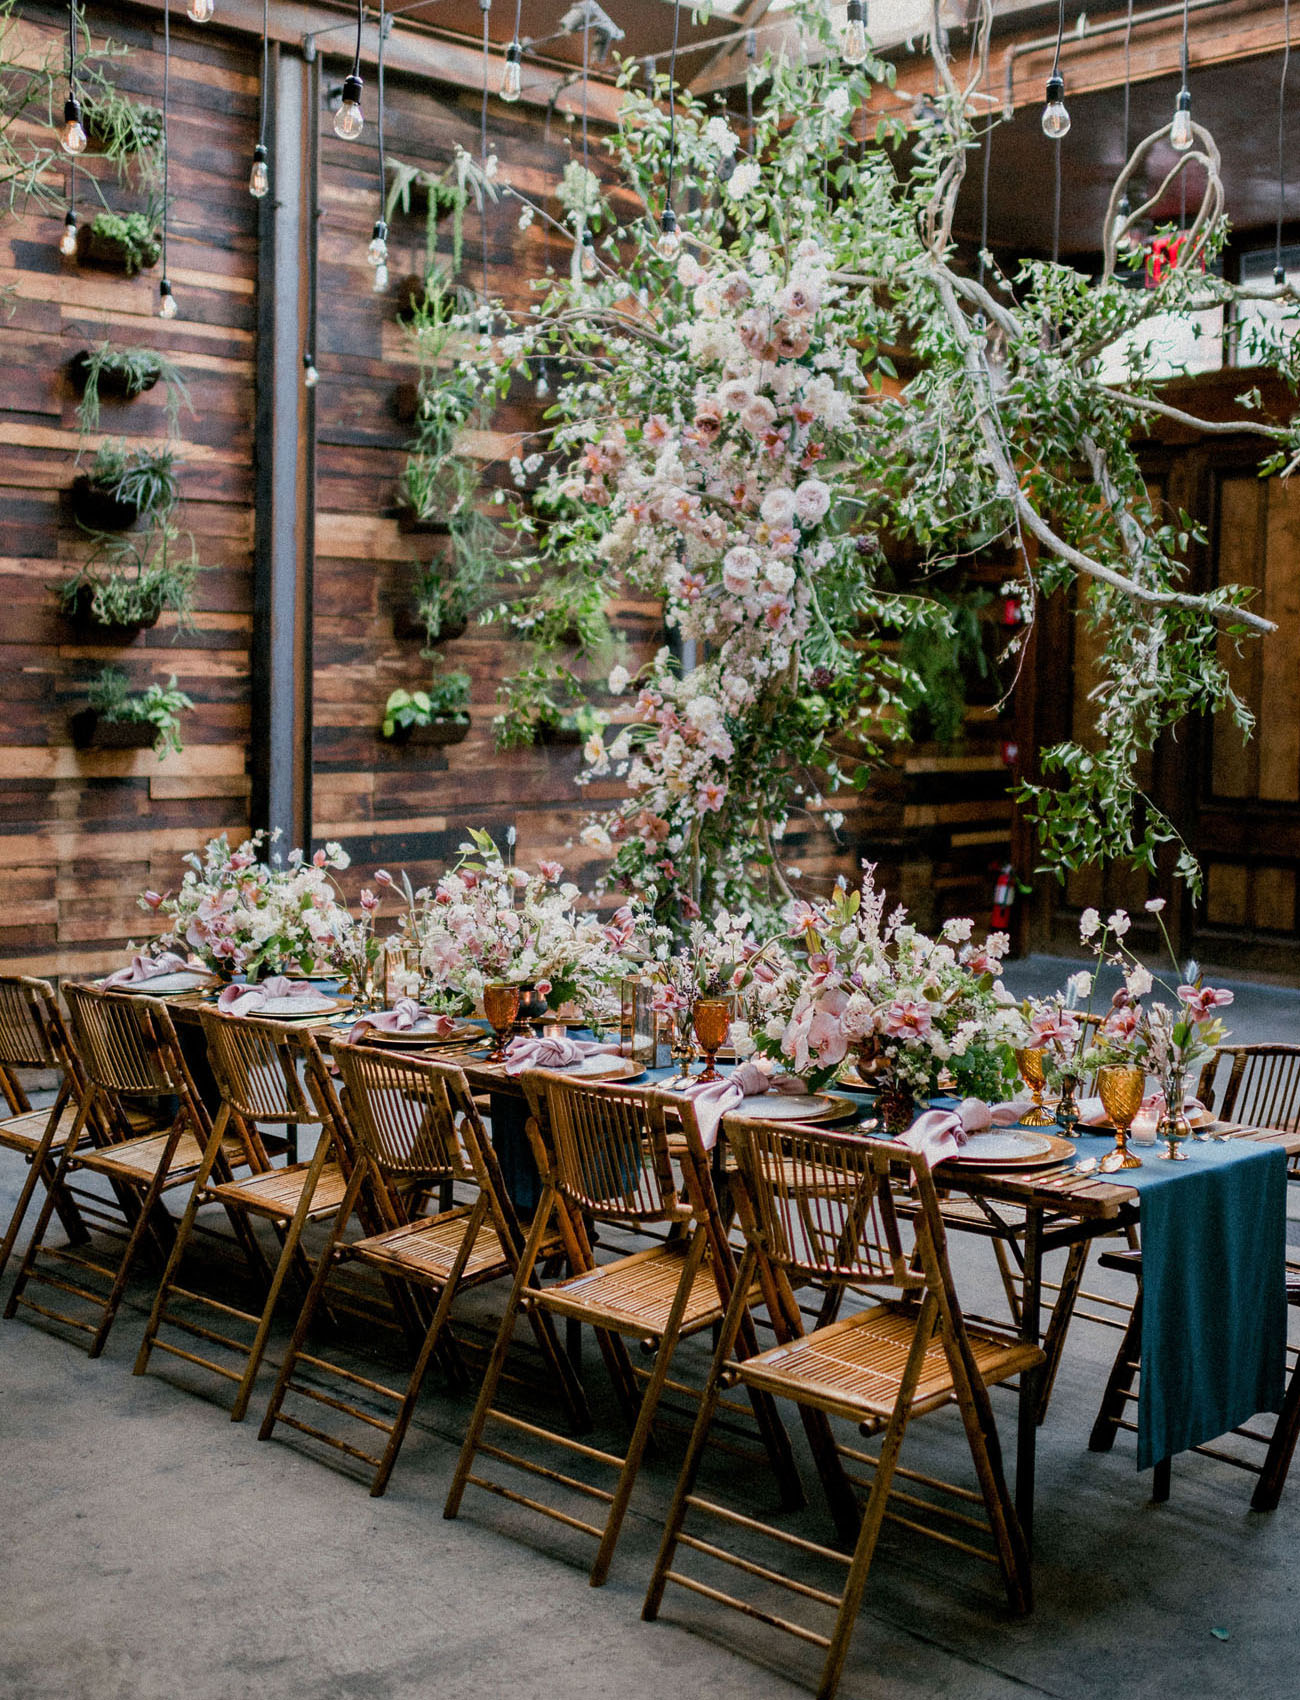 The reception space was done with lush white and pink blooms and greenery all over